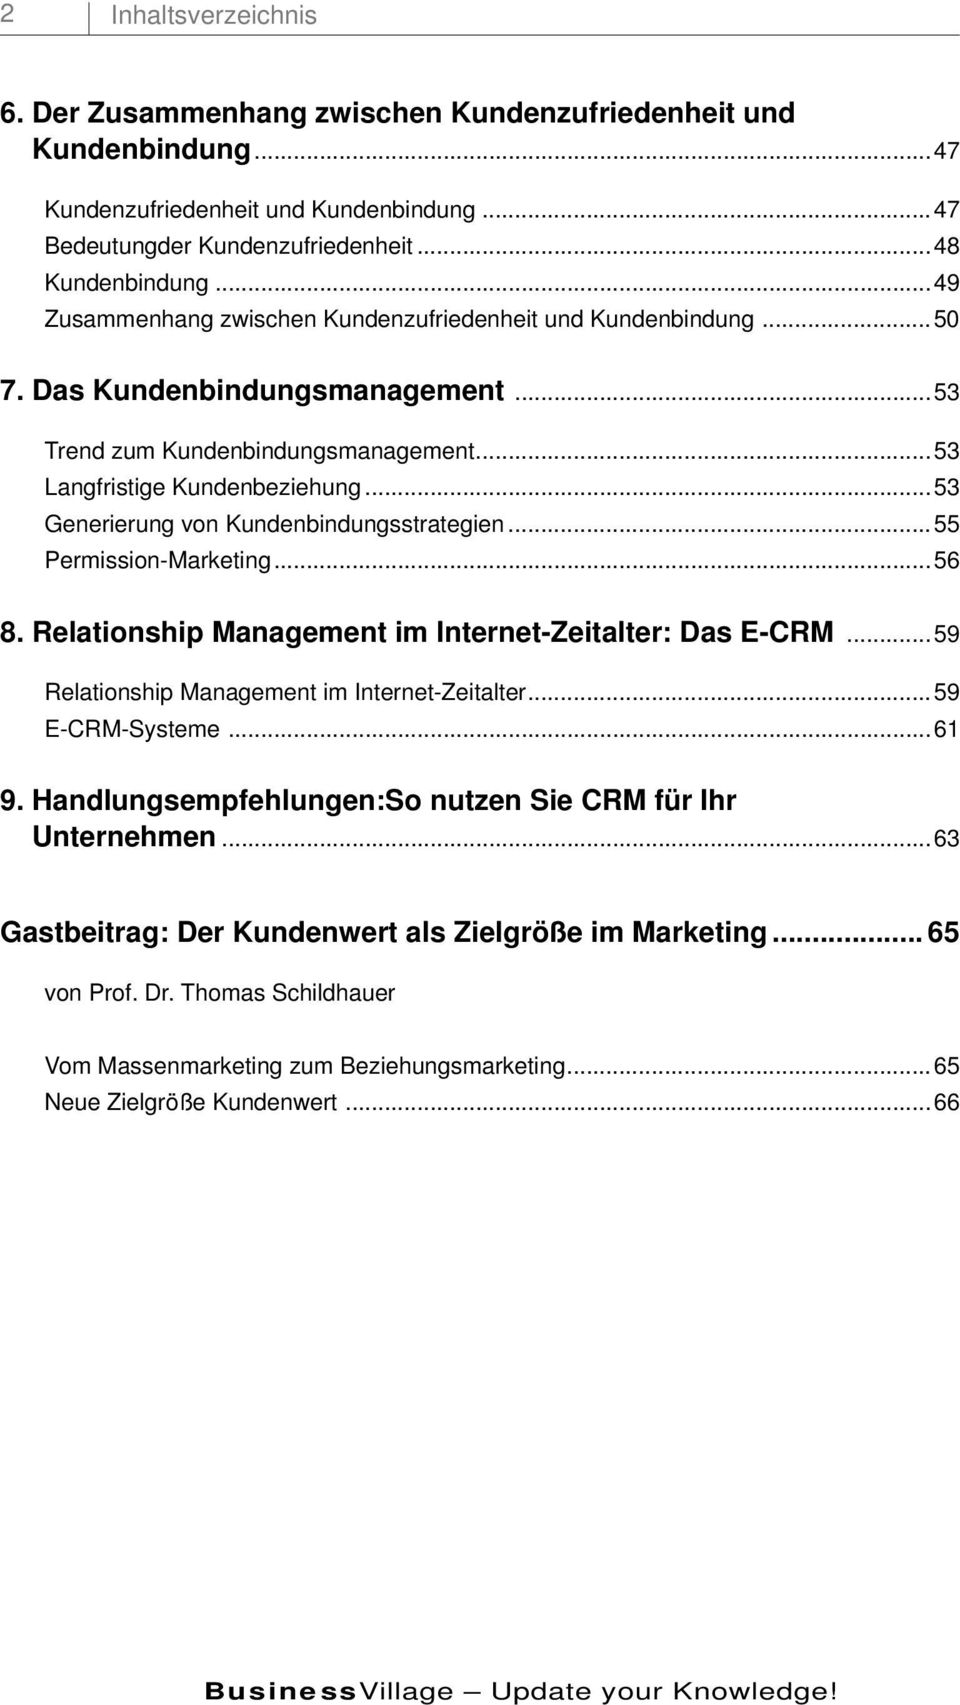 ..53 Generierung von Kundenbindungsstrategien...55 Permission-Marketing...56 8. Relationship Management im Internet-Zeitalter: Das E-CRM... 59 Relationship Management im Internet-Zeitalter.